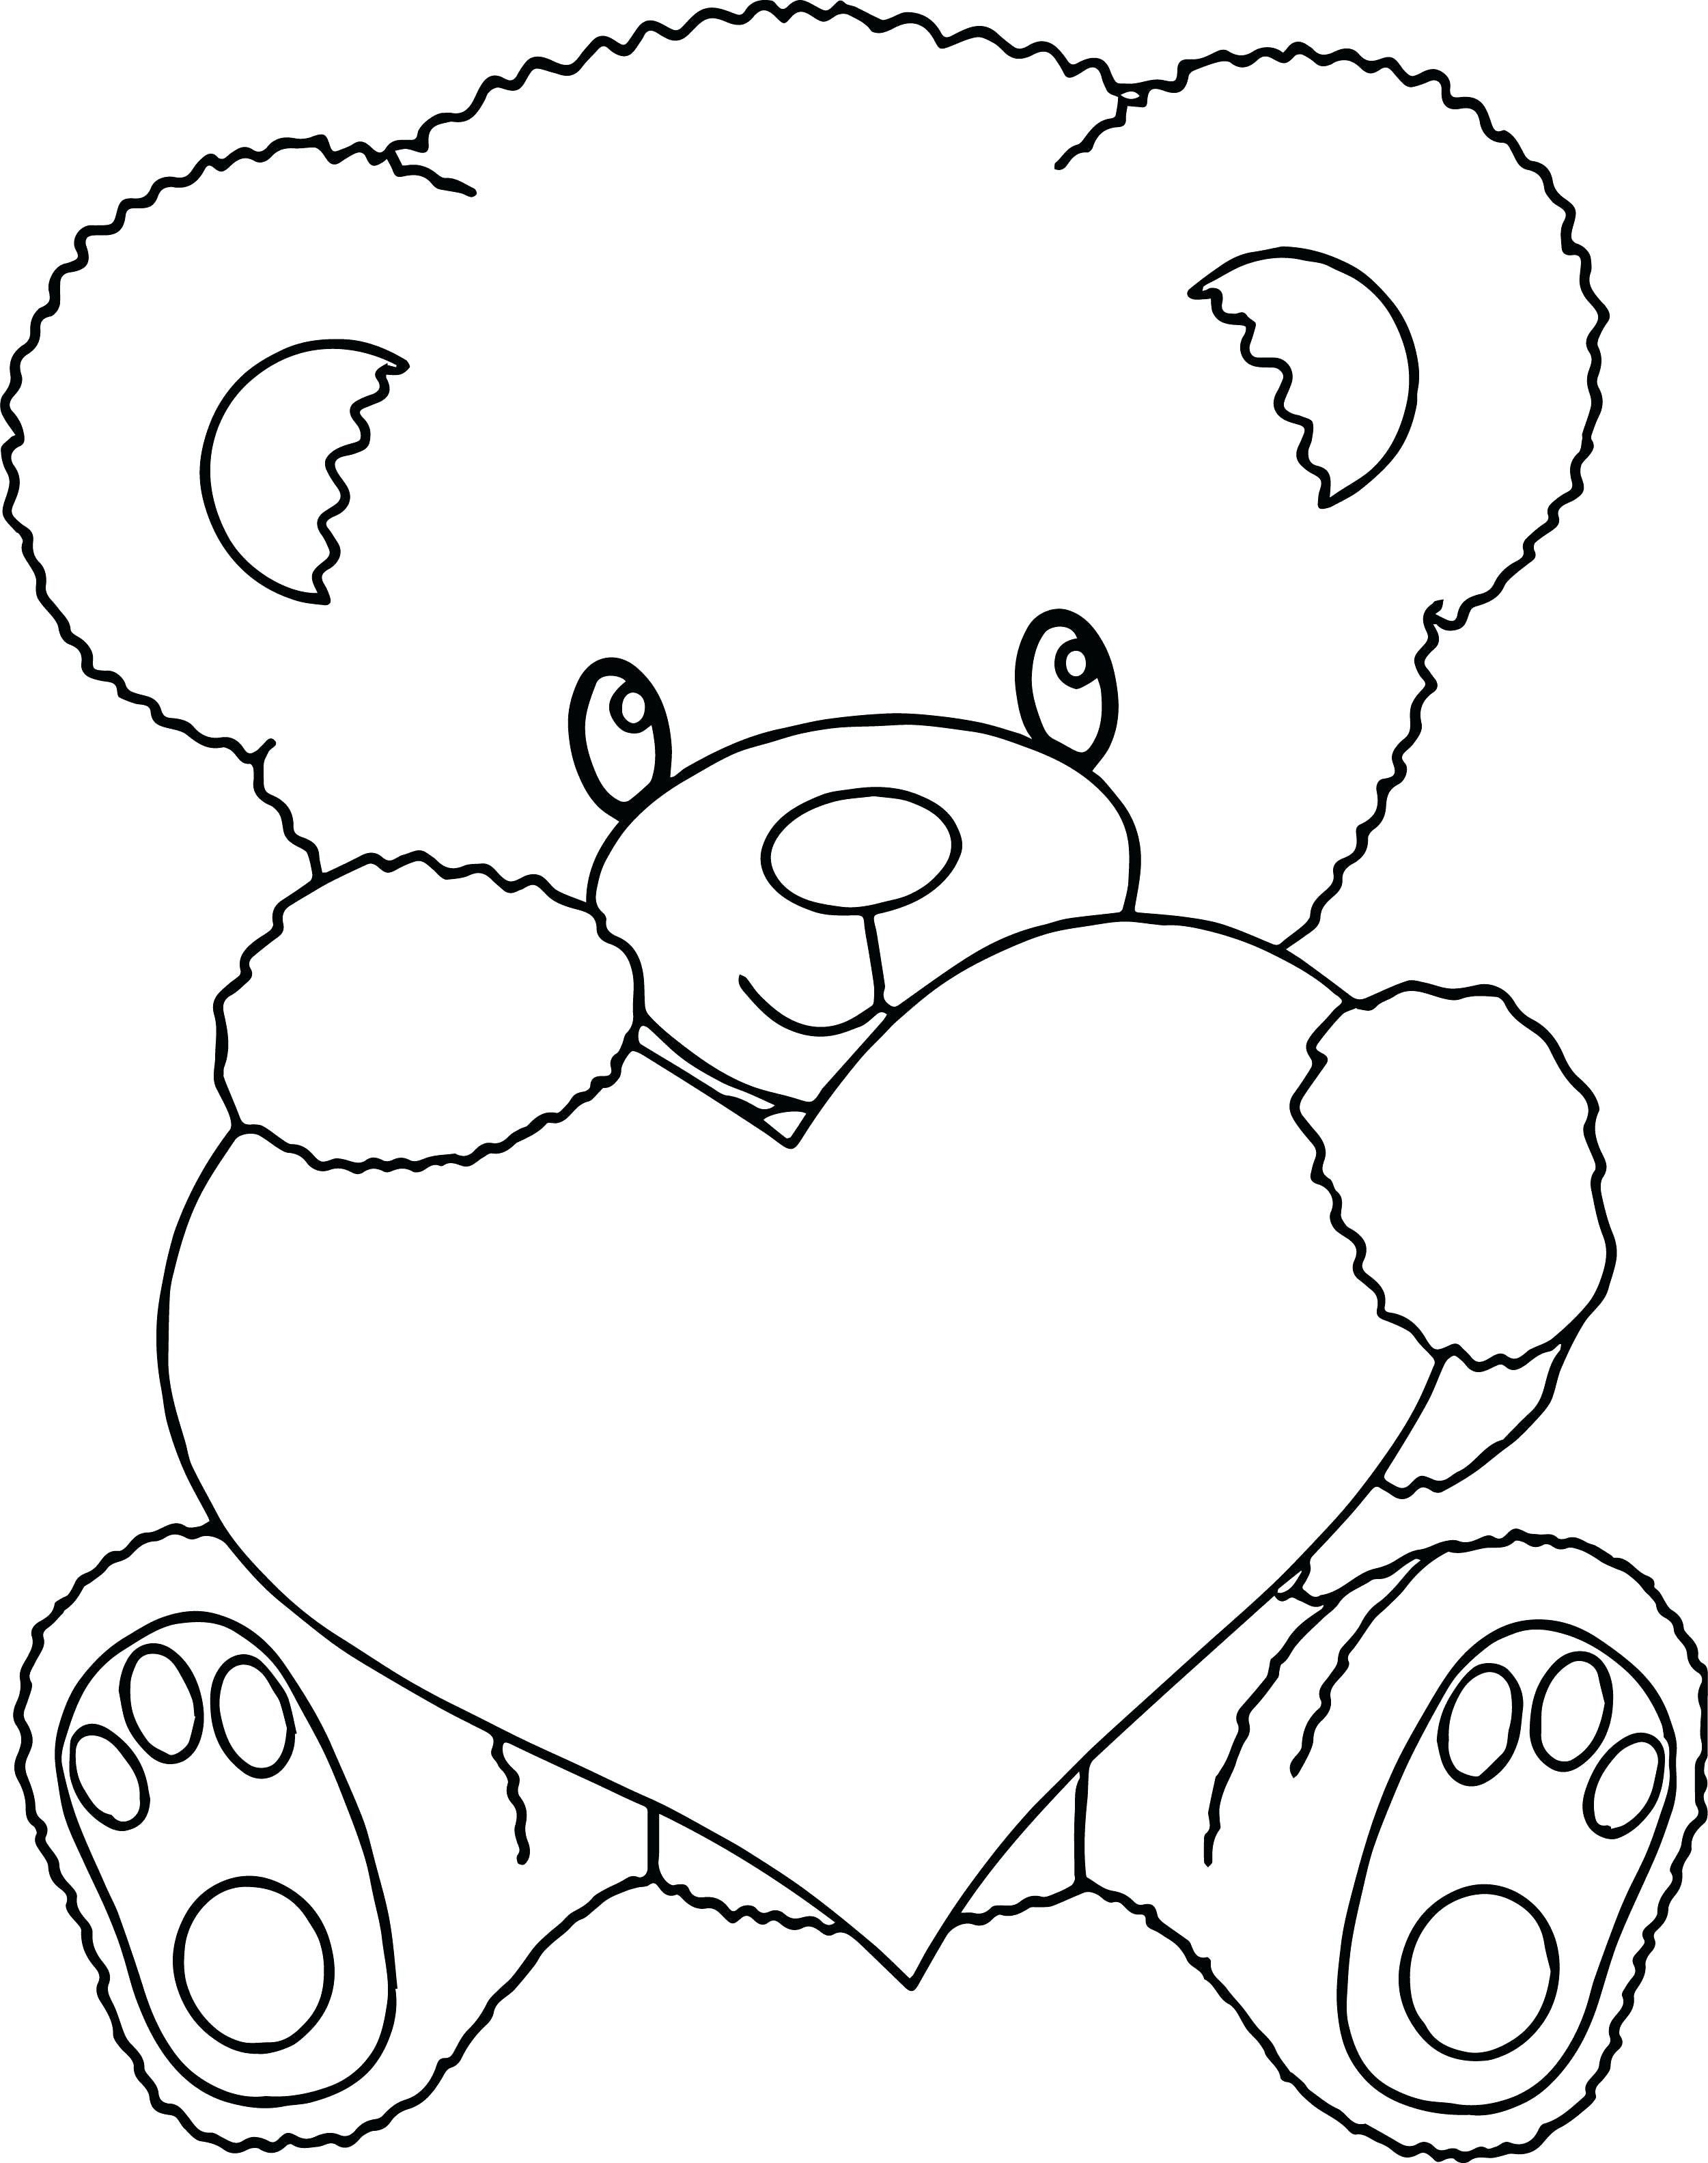 Teddy Bear Coloring Pages Inspirational Good Luck Care Bear Coloring Pages Nemesiscolor In 2020 Heart Coloring Pages Bear Coloring Pages Teddy Bear Coloring Pages